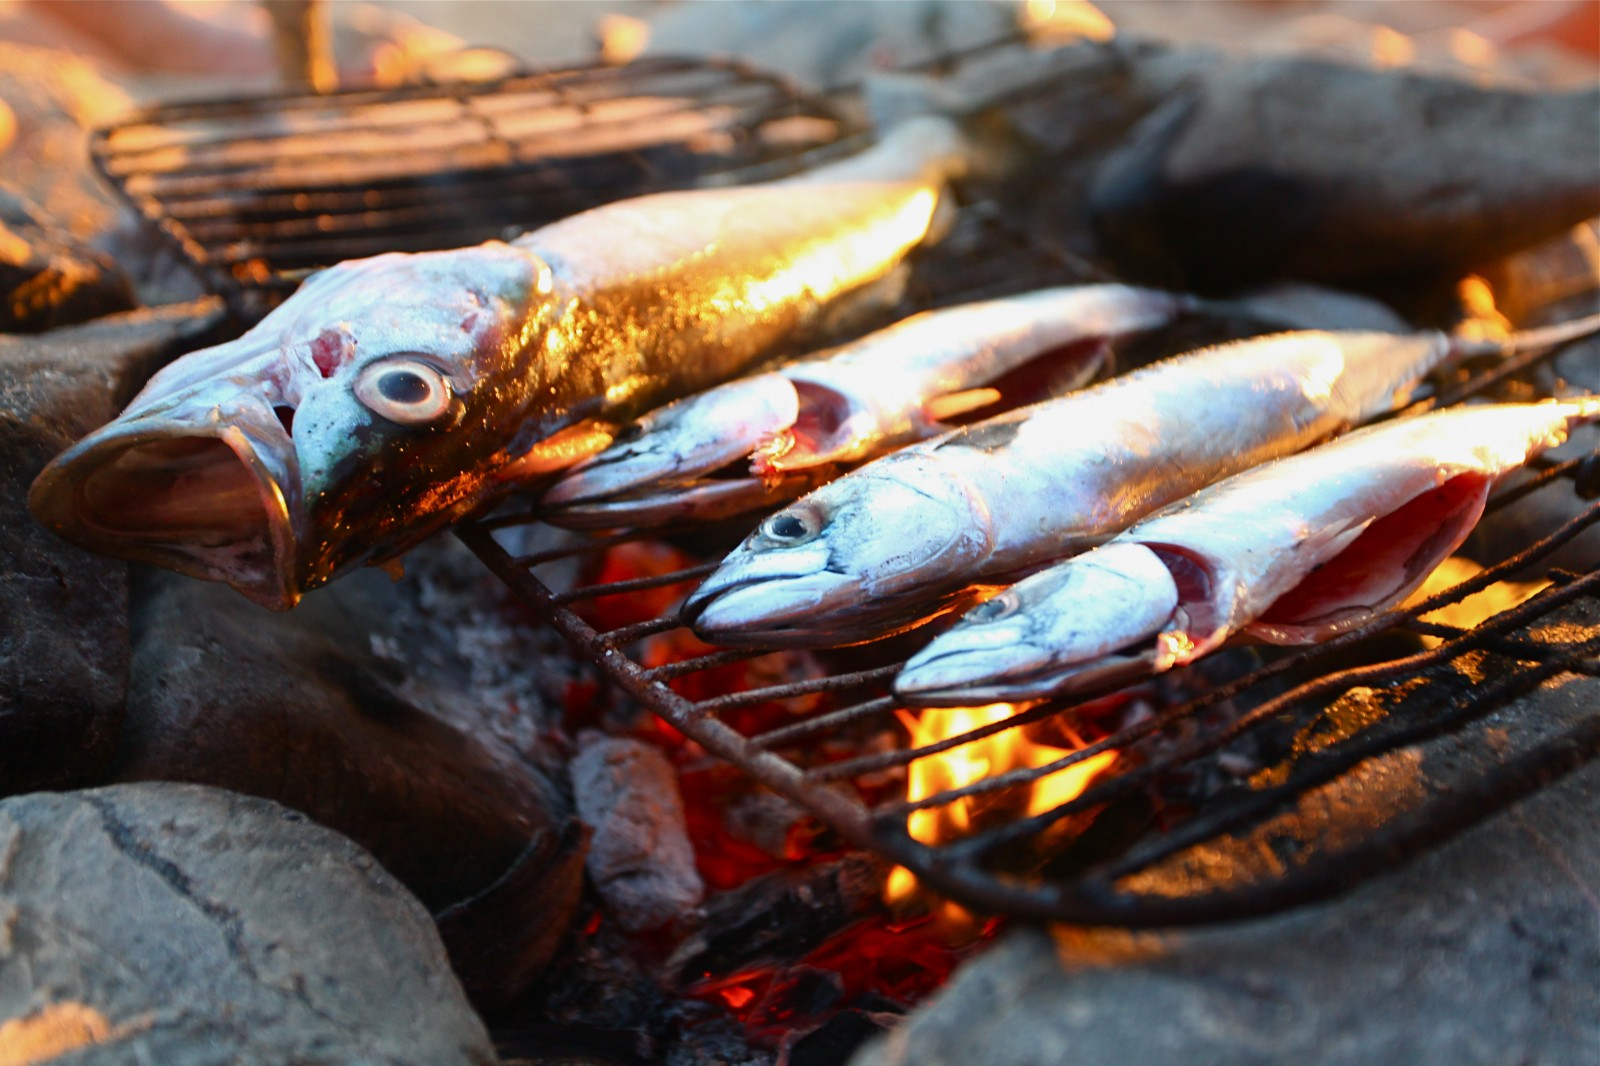 God surprises us with new beginnings and possibilities for Fish on fire